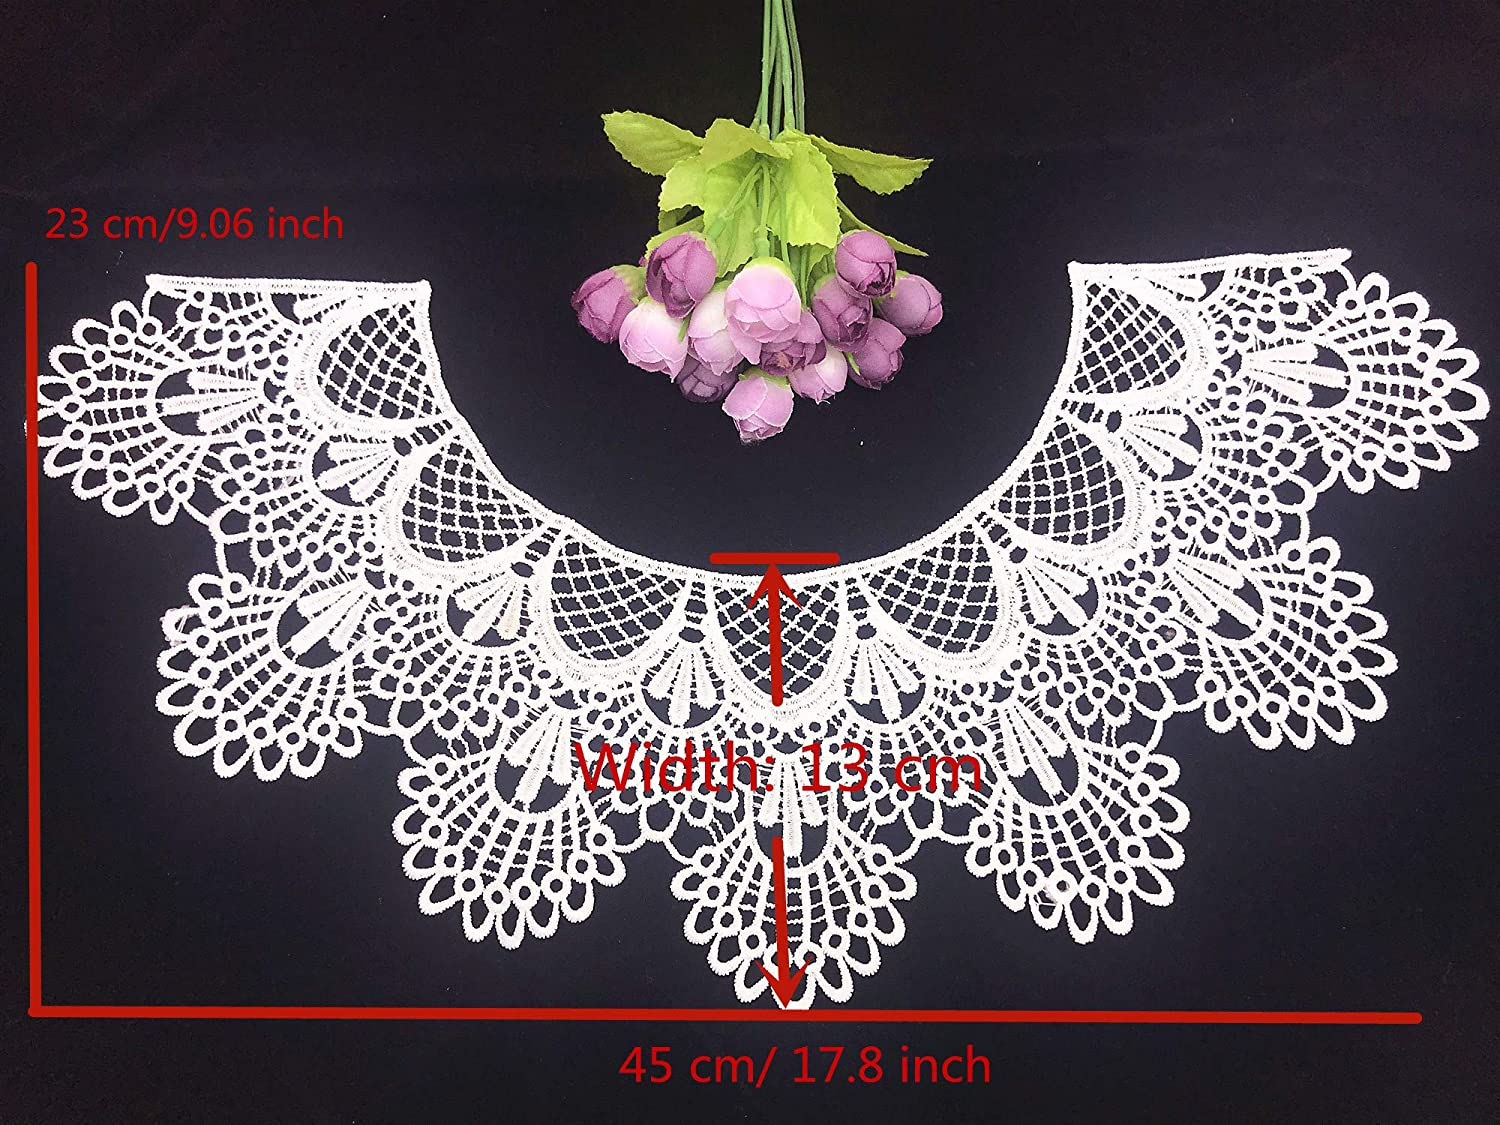 White 1pc Embroidery Round Ripple Neck African Lace Fabric Collar,DIY Handmade Lace Fabrics for Sewing Crafts